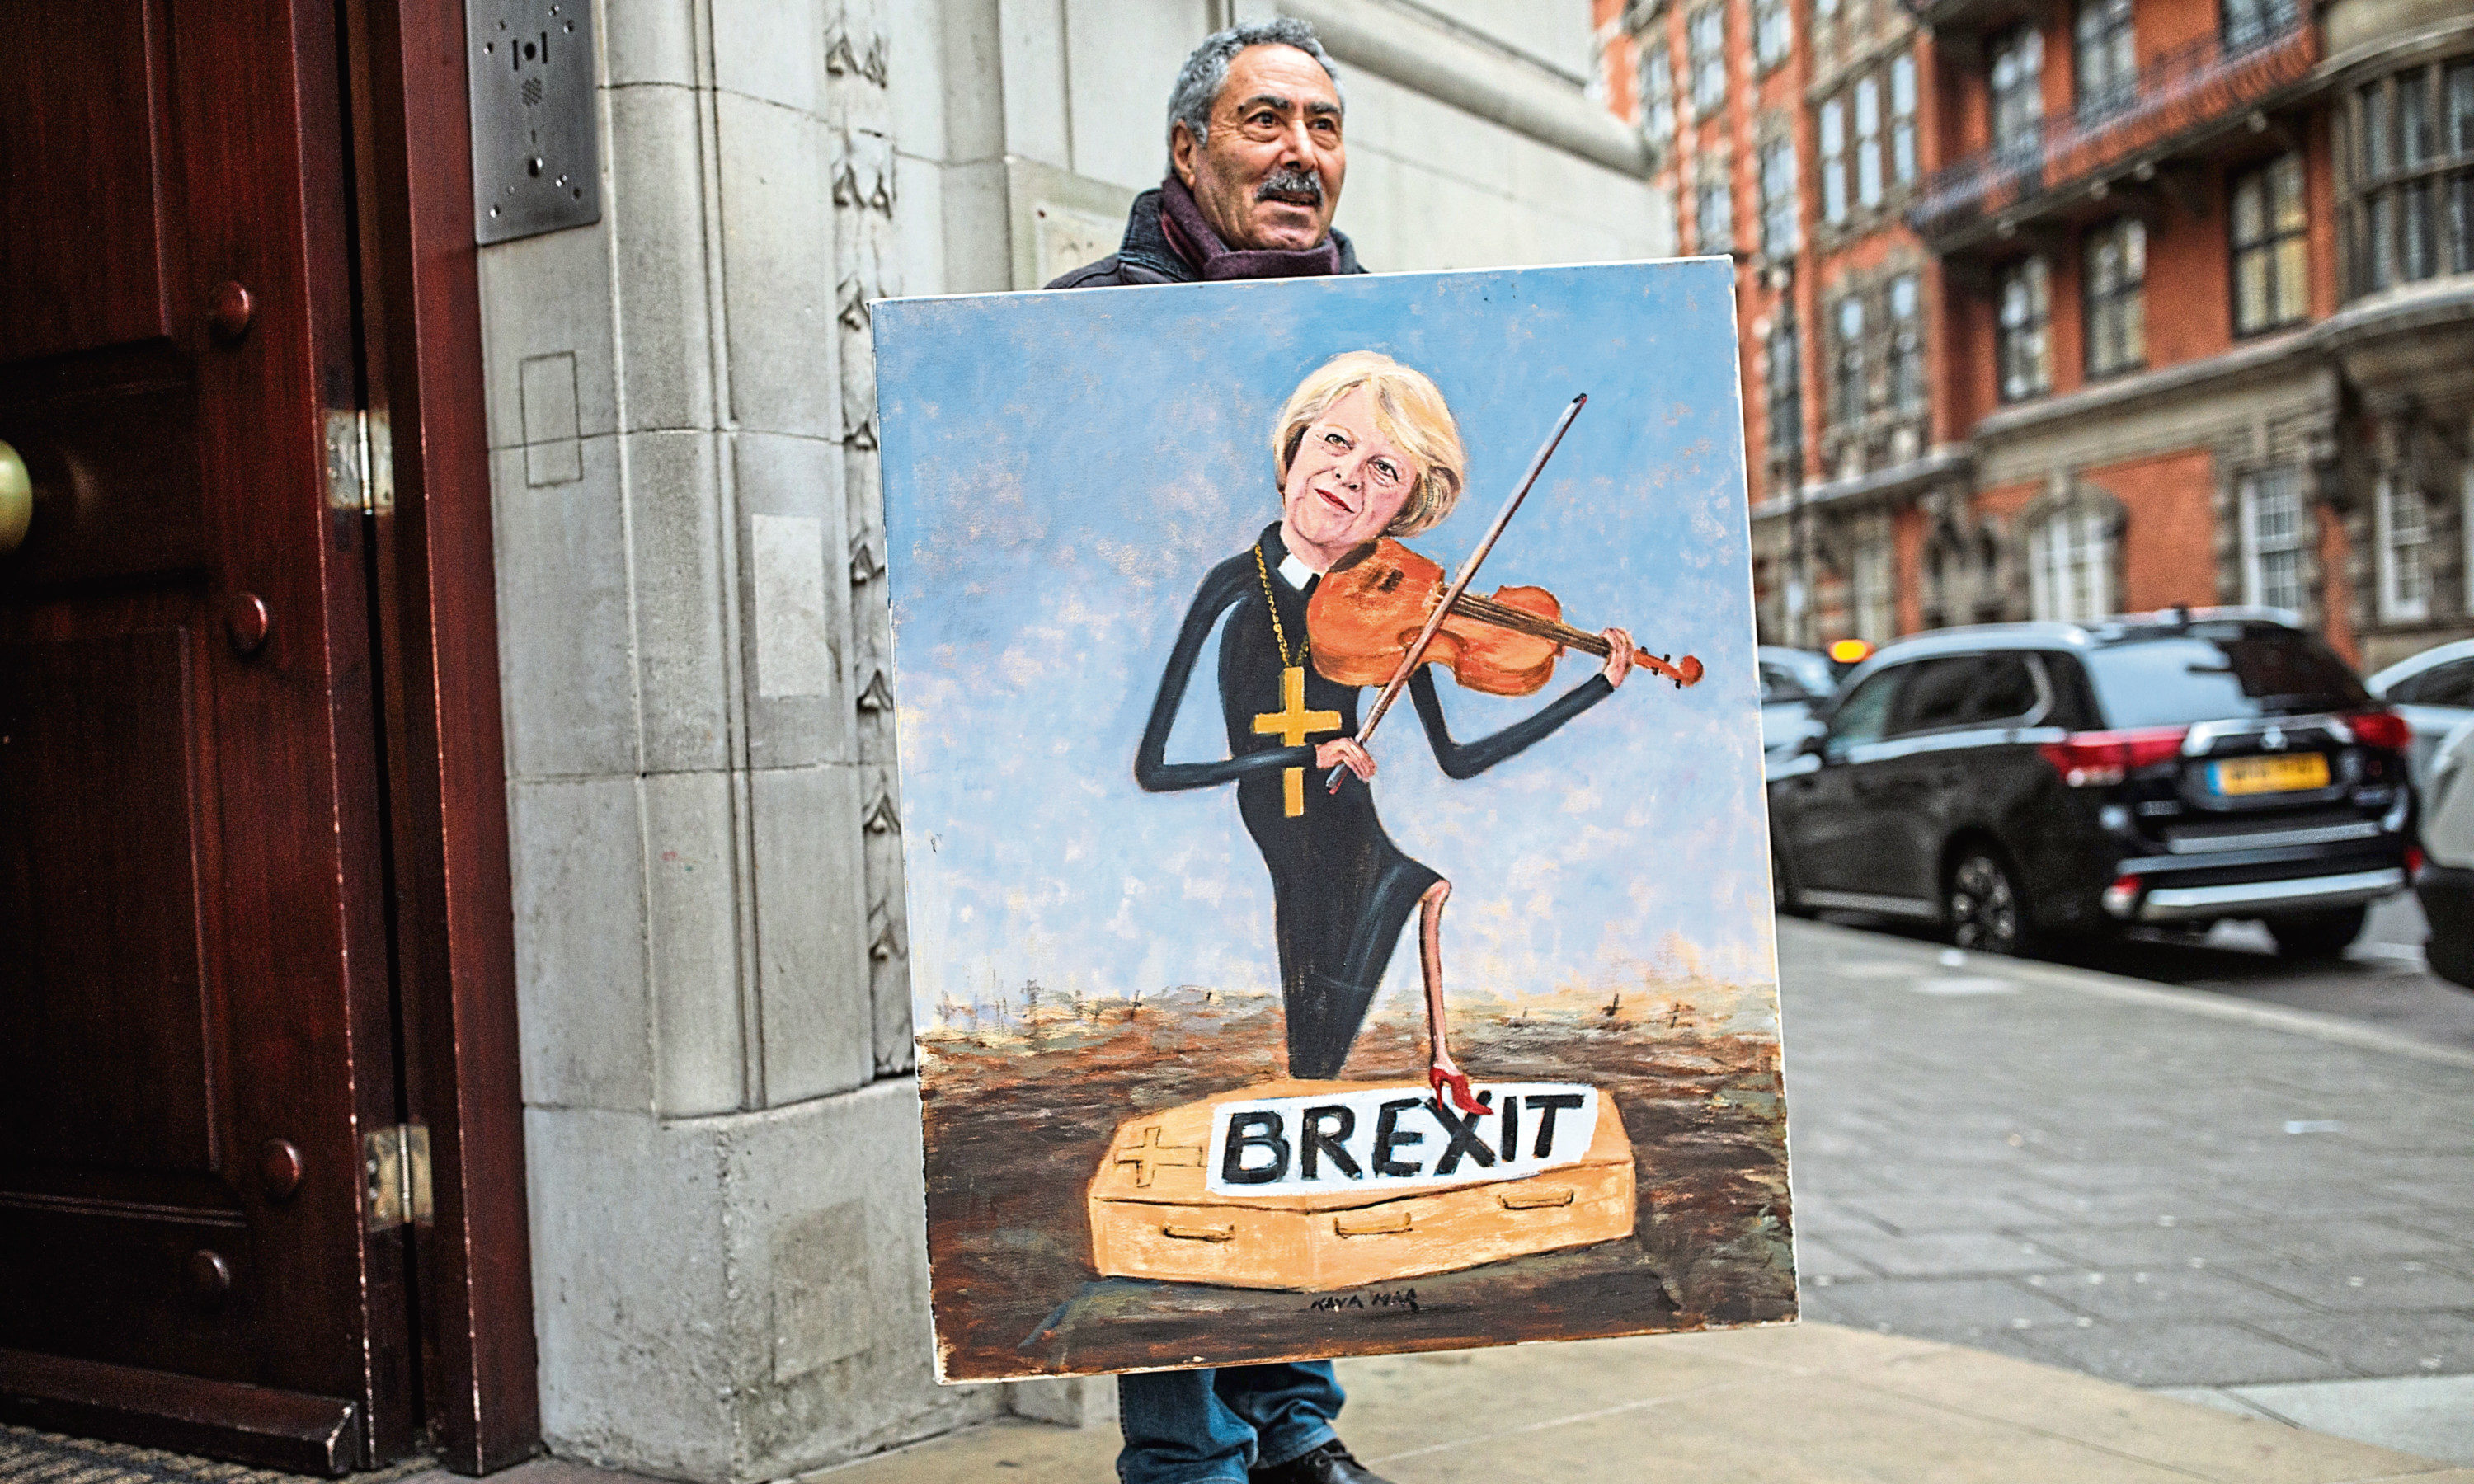 Political artist Kaya Mar stands with his painting depicting Prime Minister Theresa May playing a violin outside Millbank Studios in Westminster on January 16, 2019 in London.